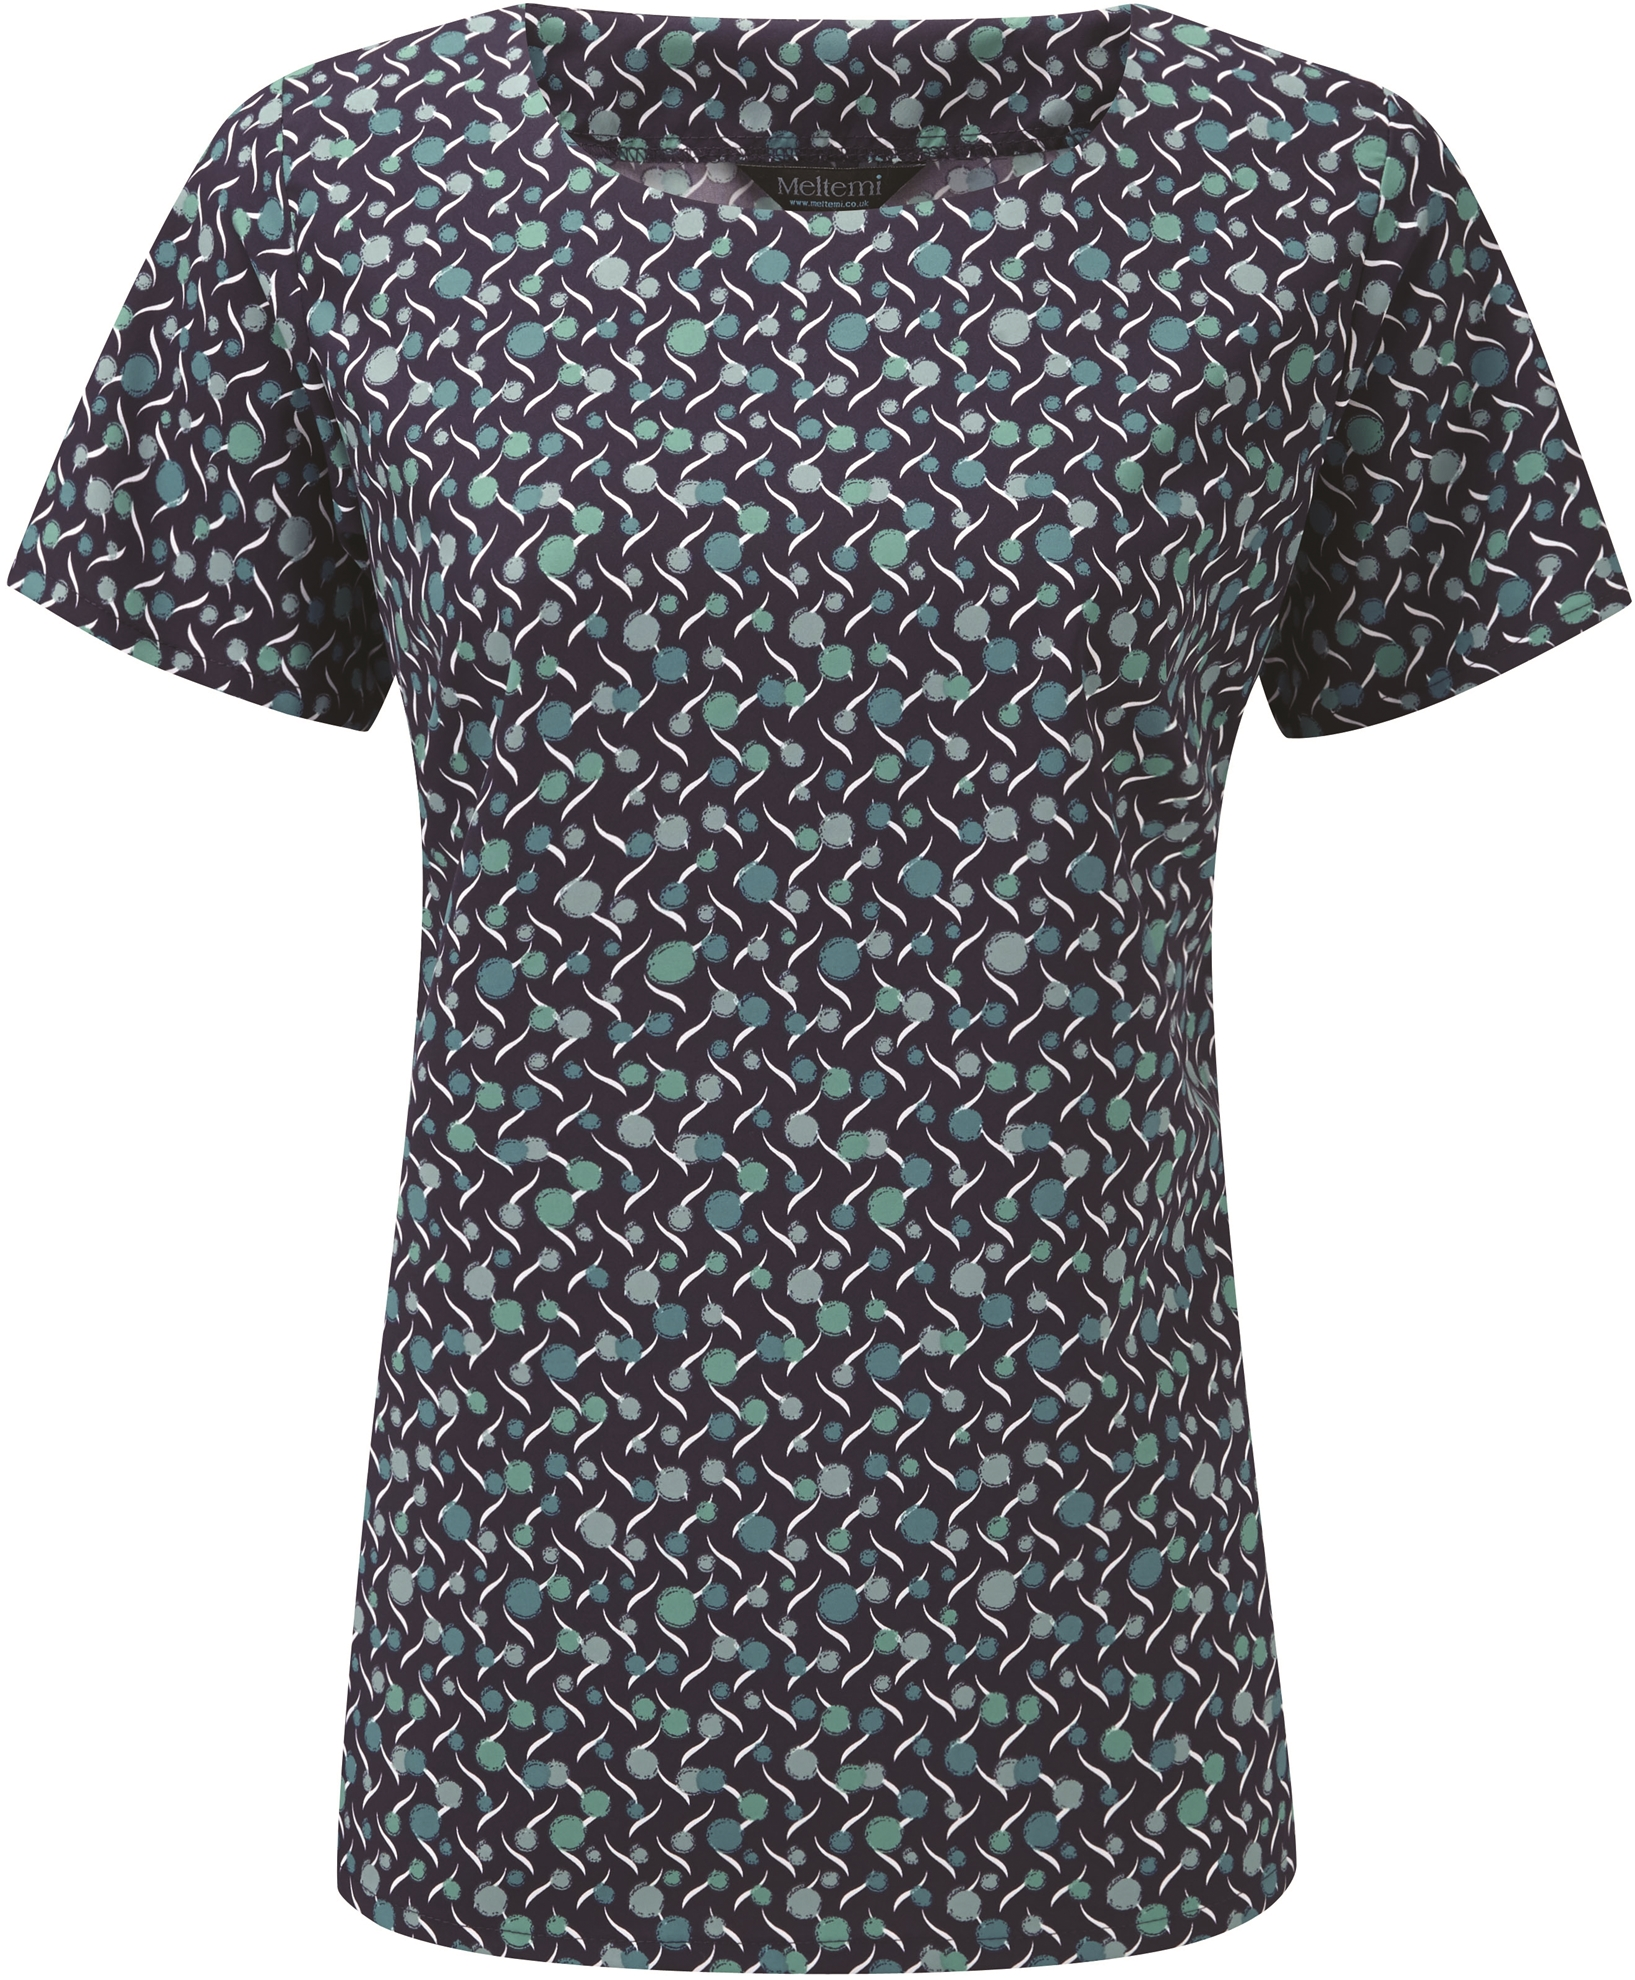 Picture of Round Neck Coolweave Blouse - Navy/Aqua Chloe Print